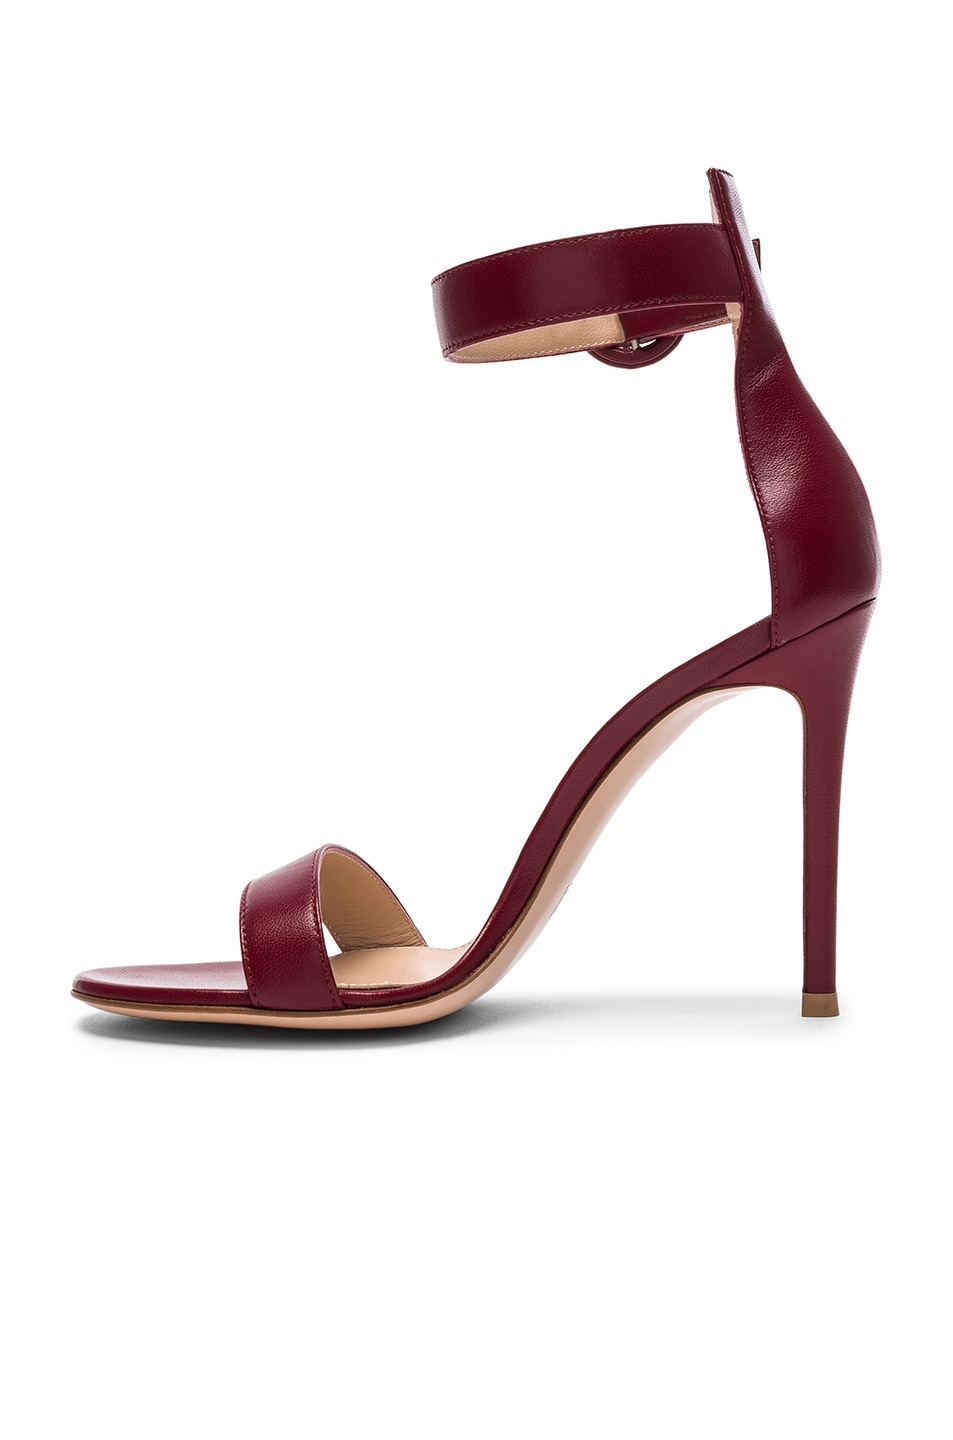 Image 5 of Gianvito Rossi for FWRD Leather Portofino Heels in Syrah